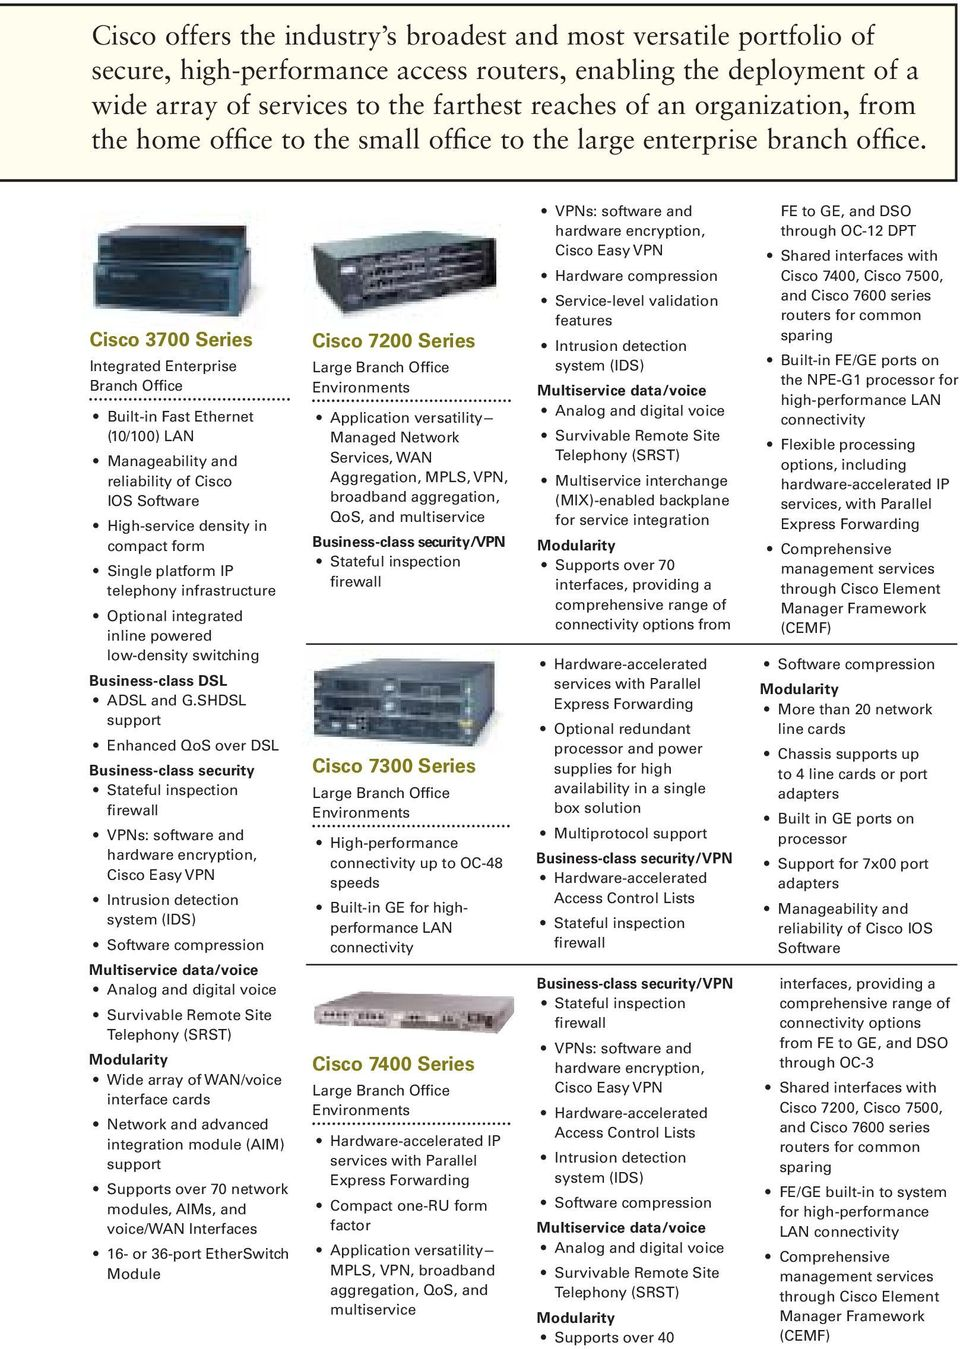 Cisco 3700 Series Integrated Enterprise Branch Office Built-in Fast Ethernet (10/100) LAN Manageability and reliability of Cisco IOS Software High-service density in compact form Single platform IP